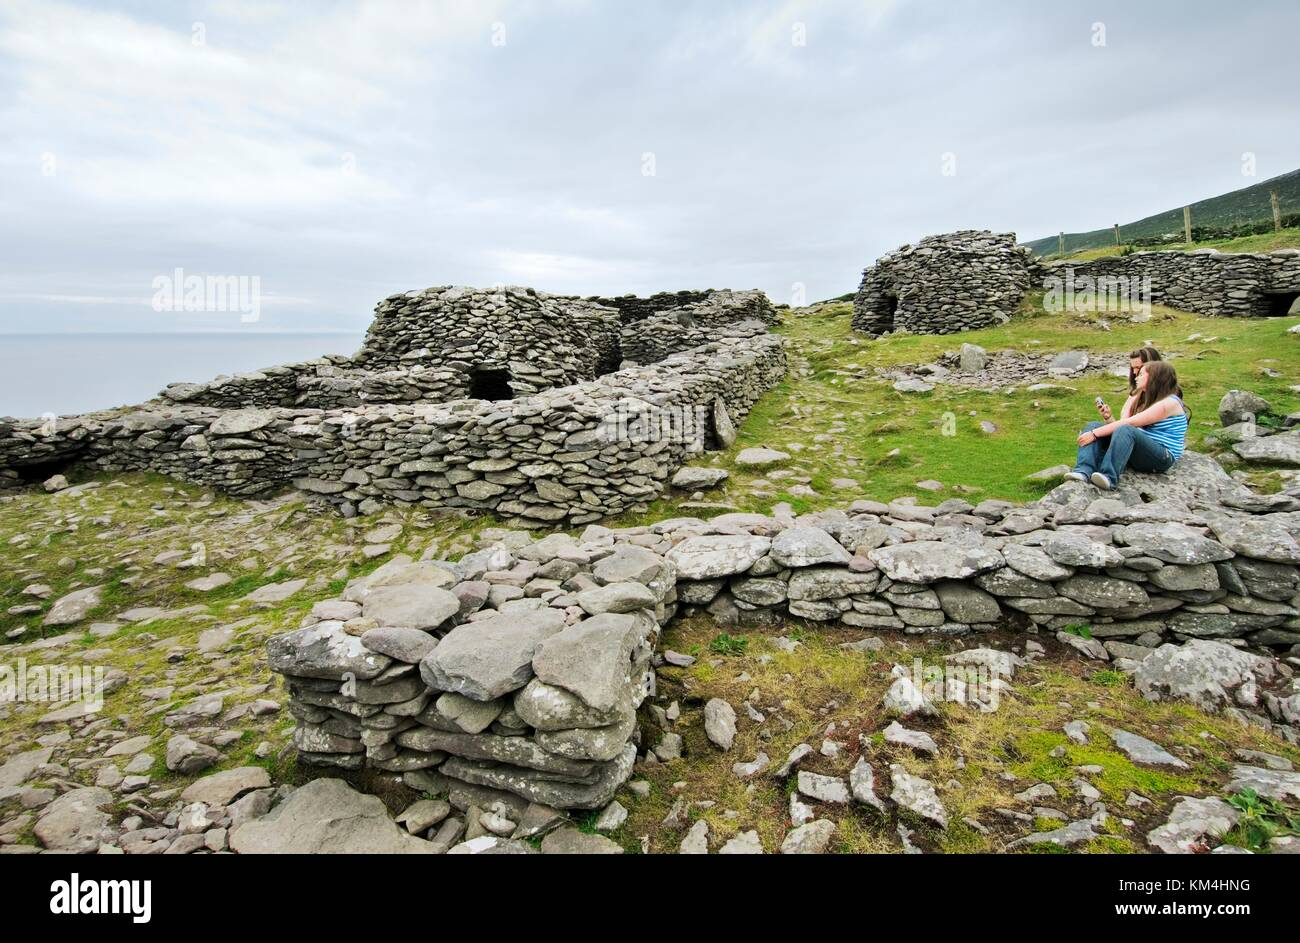 Irish Stone Houses Ancient Celtic Stone Houses In Walled Enclosure Settlement